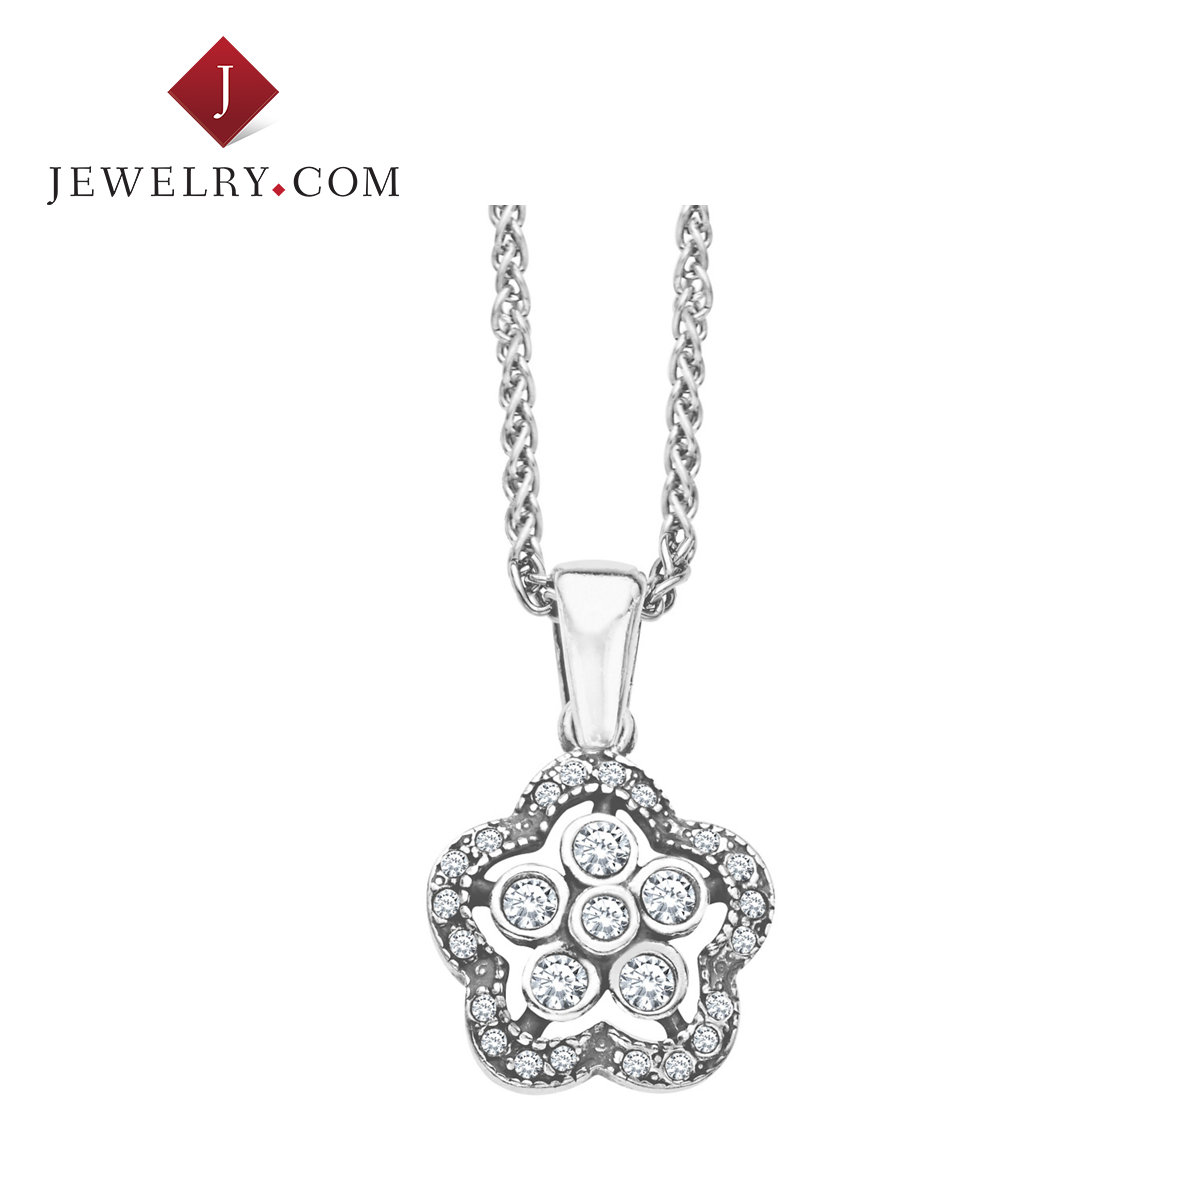 Ms. van kempen beautiful flower 925 silver swarovski crystal pendant elegant charm wind